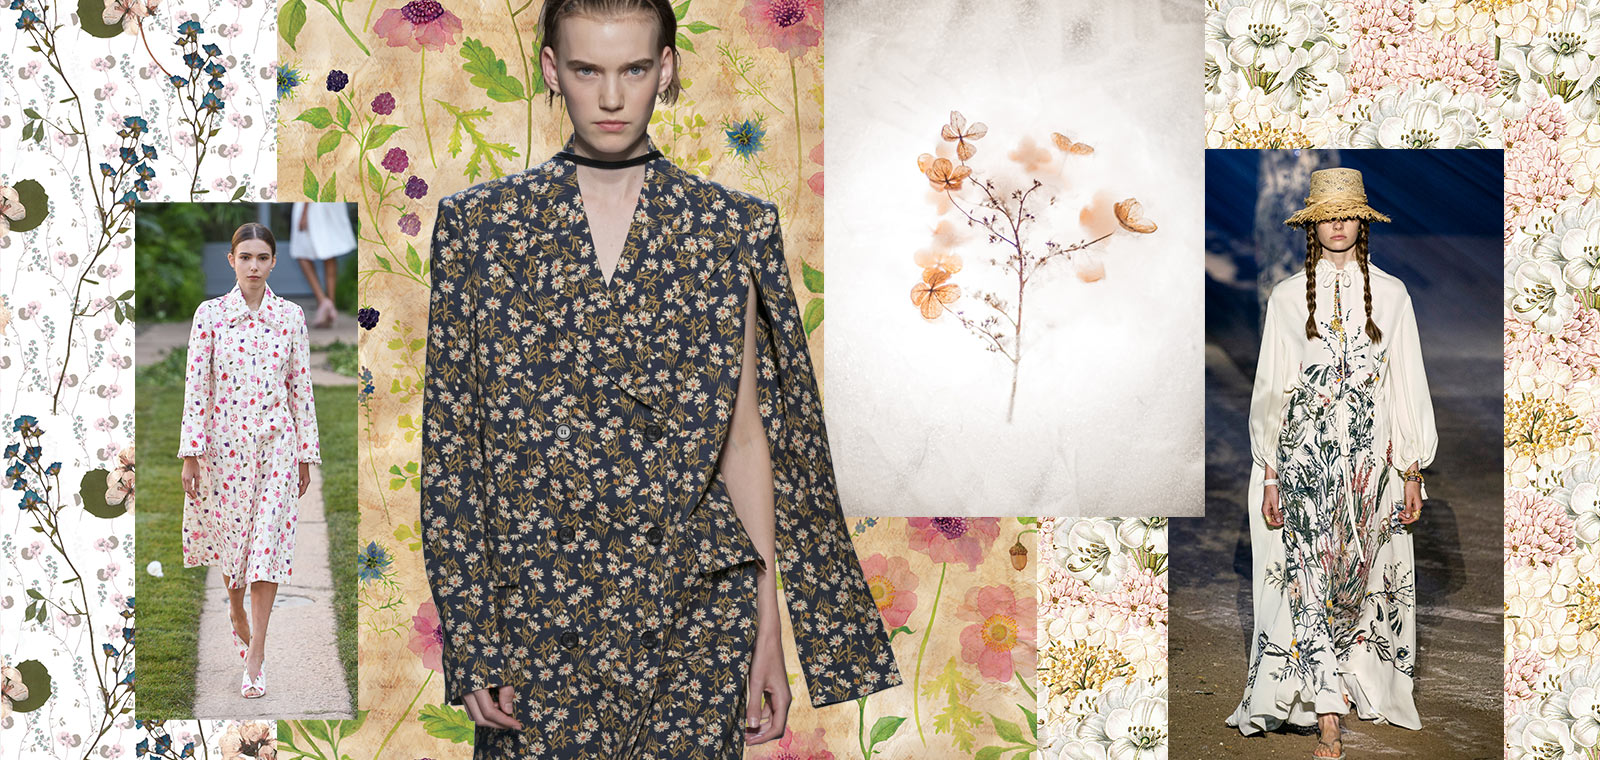 pressed-flower-SS21-2021-Spring-Summer-2021-trends-pattern-trend-forecast-print-surface-pattern-textiles-seasonal-HERO-1